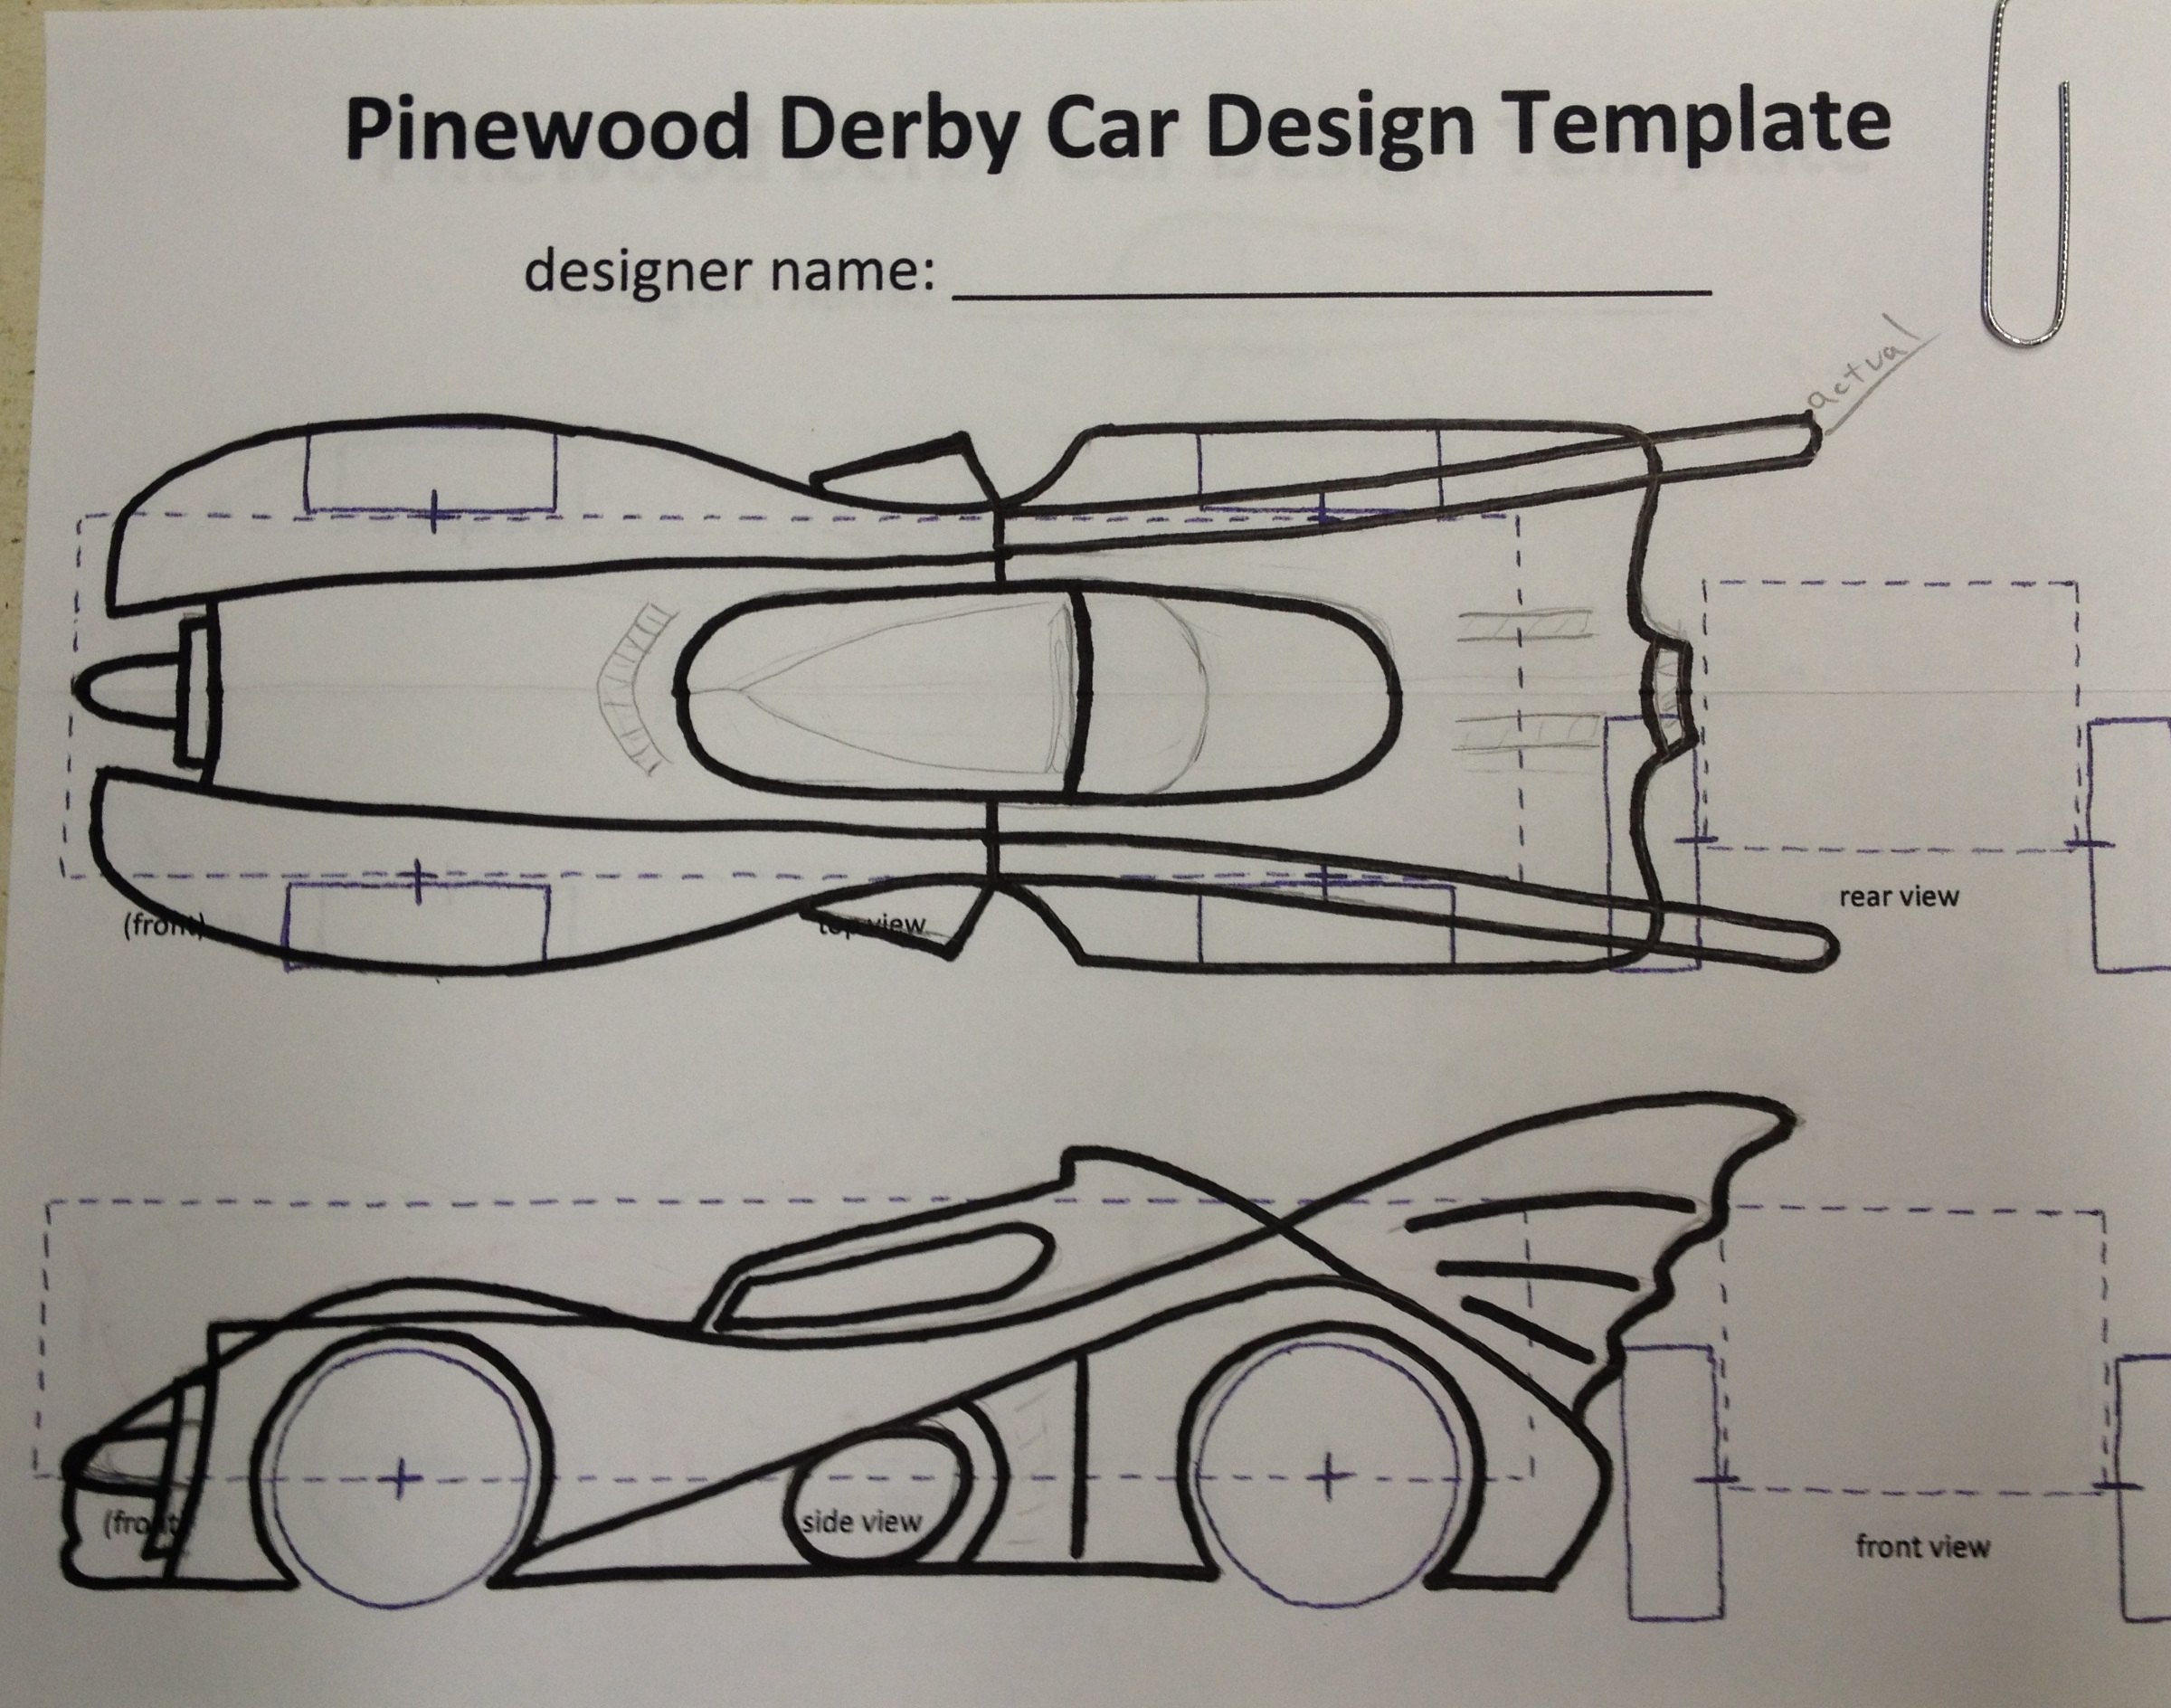 How to build an awesome batmobile pinewood derby car for Fastest pinewood derby car templates